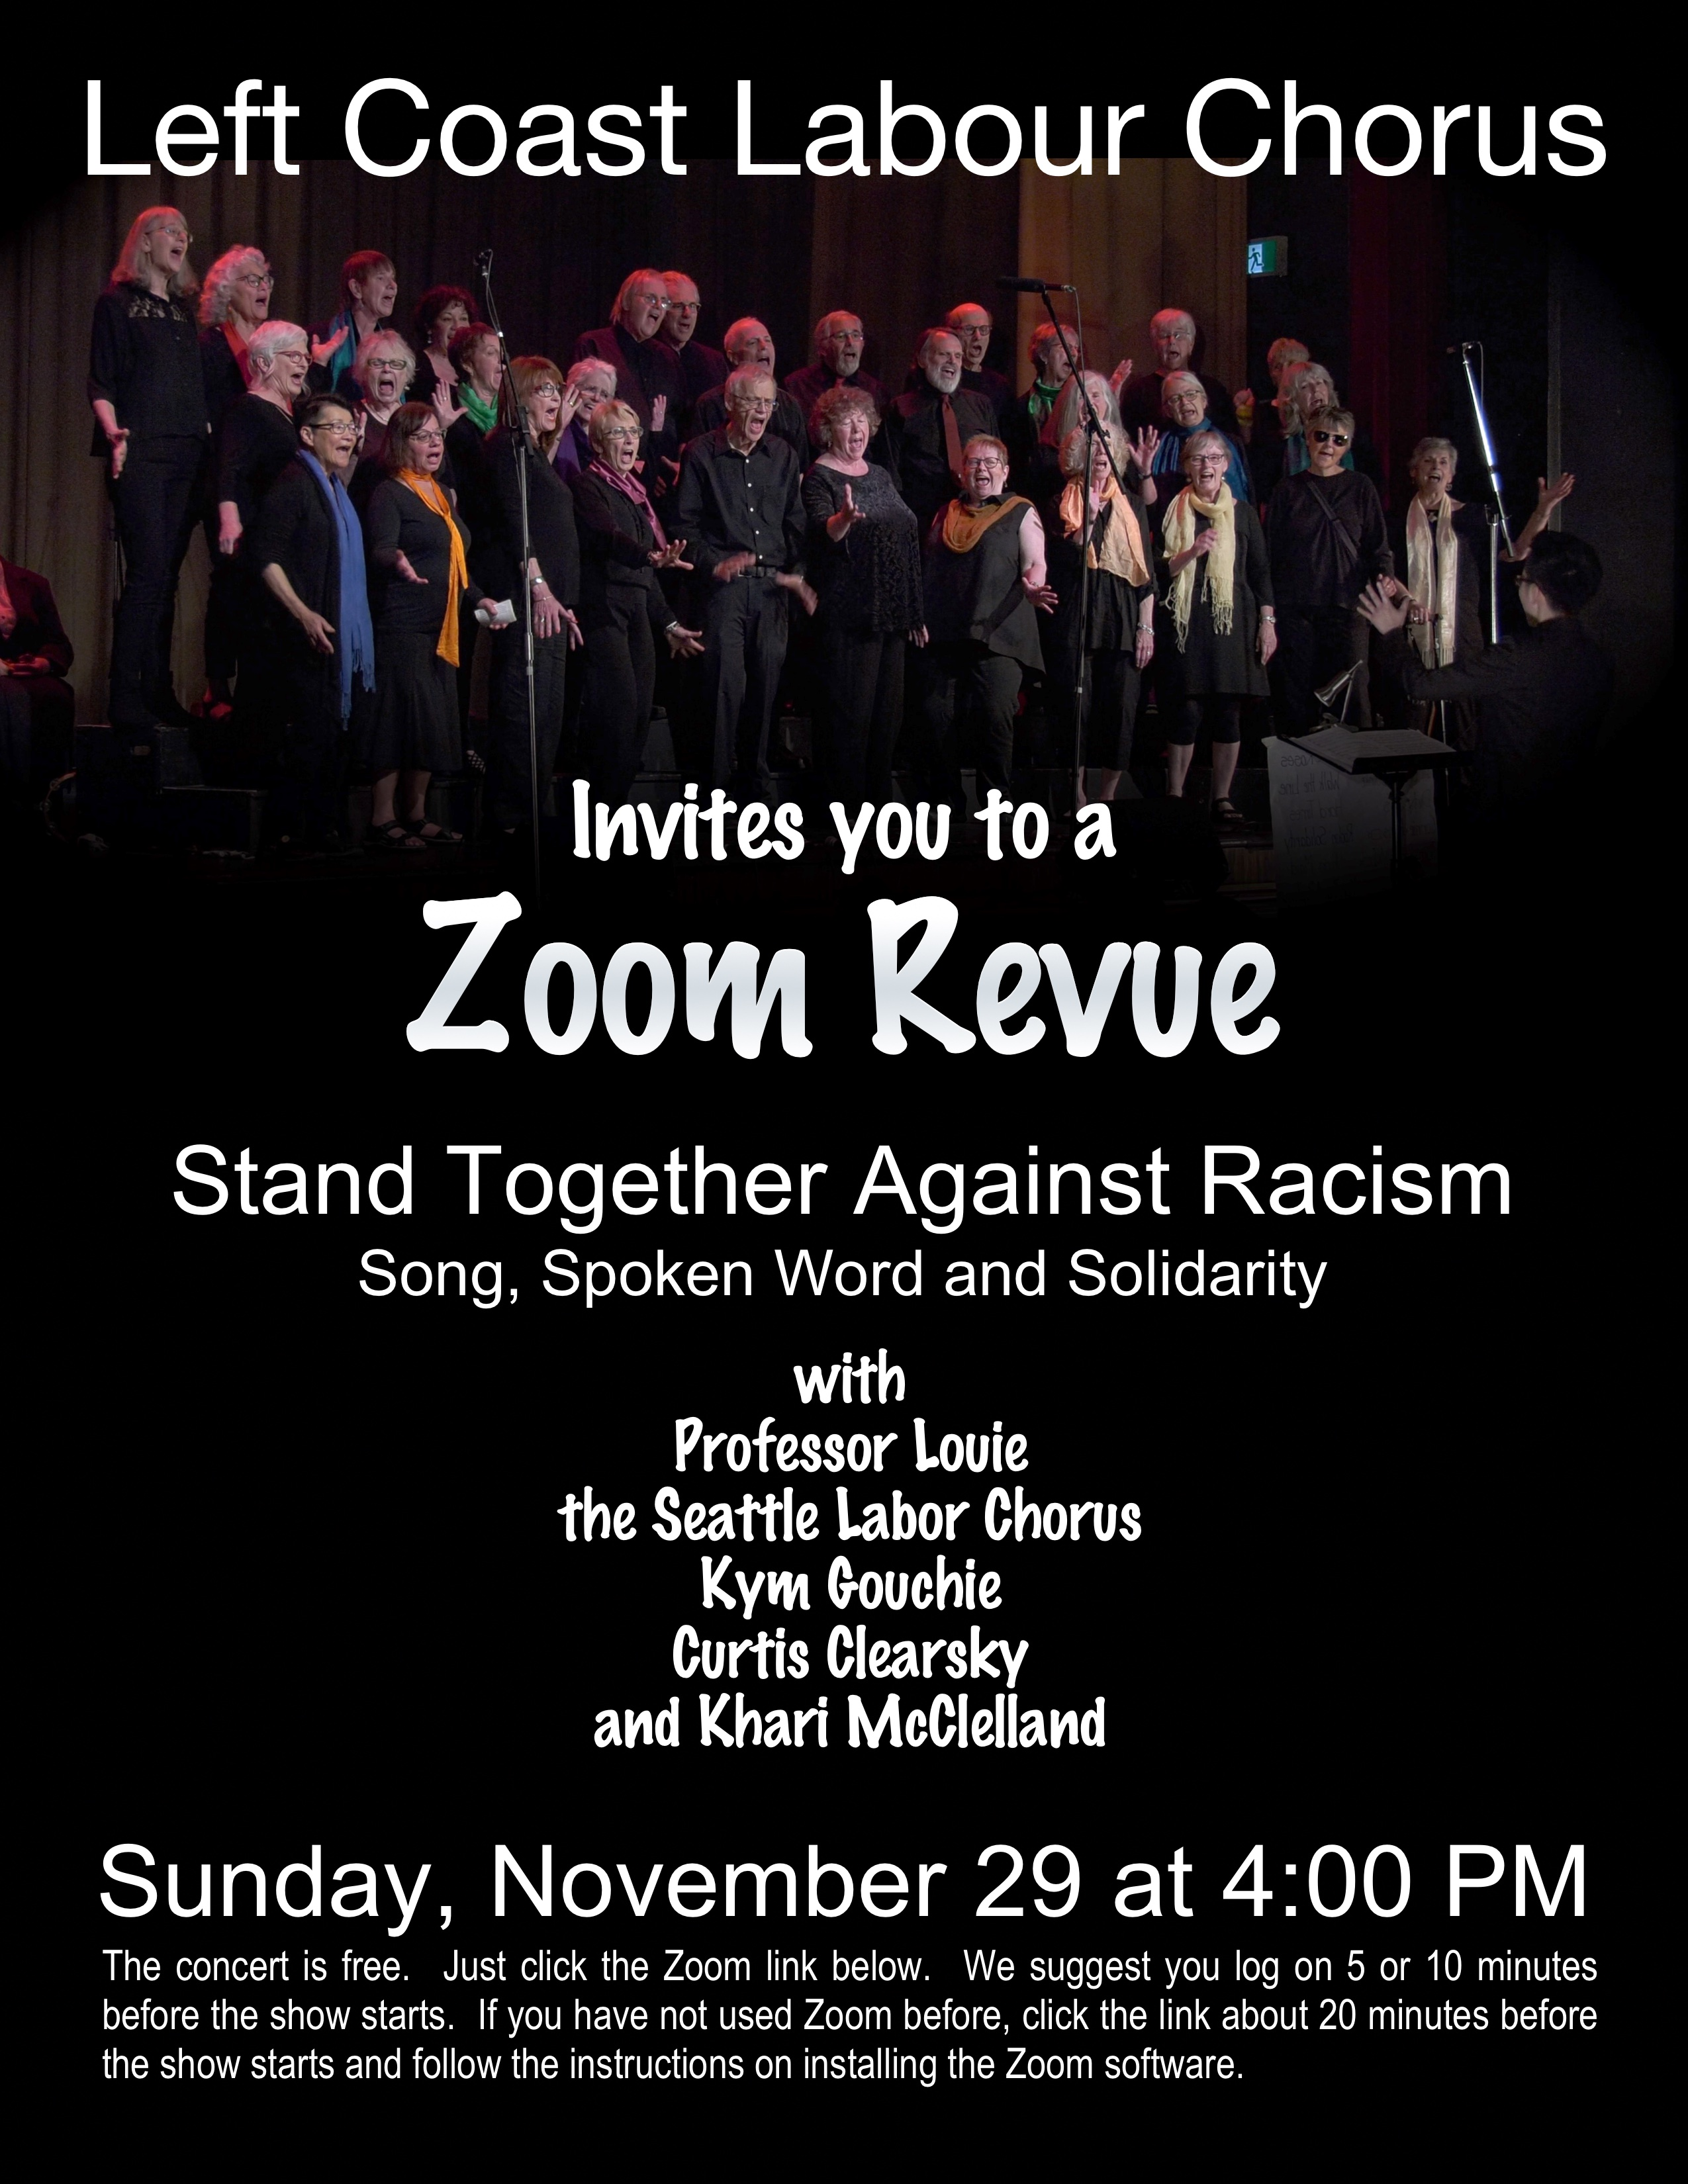 LCLC is hosting hosting another musical and spoken word revue, on November 29th, 2020.